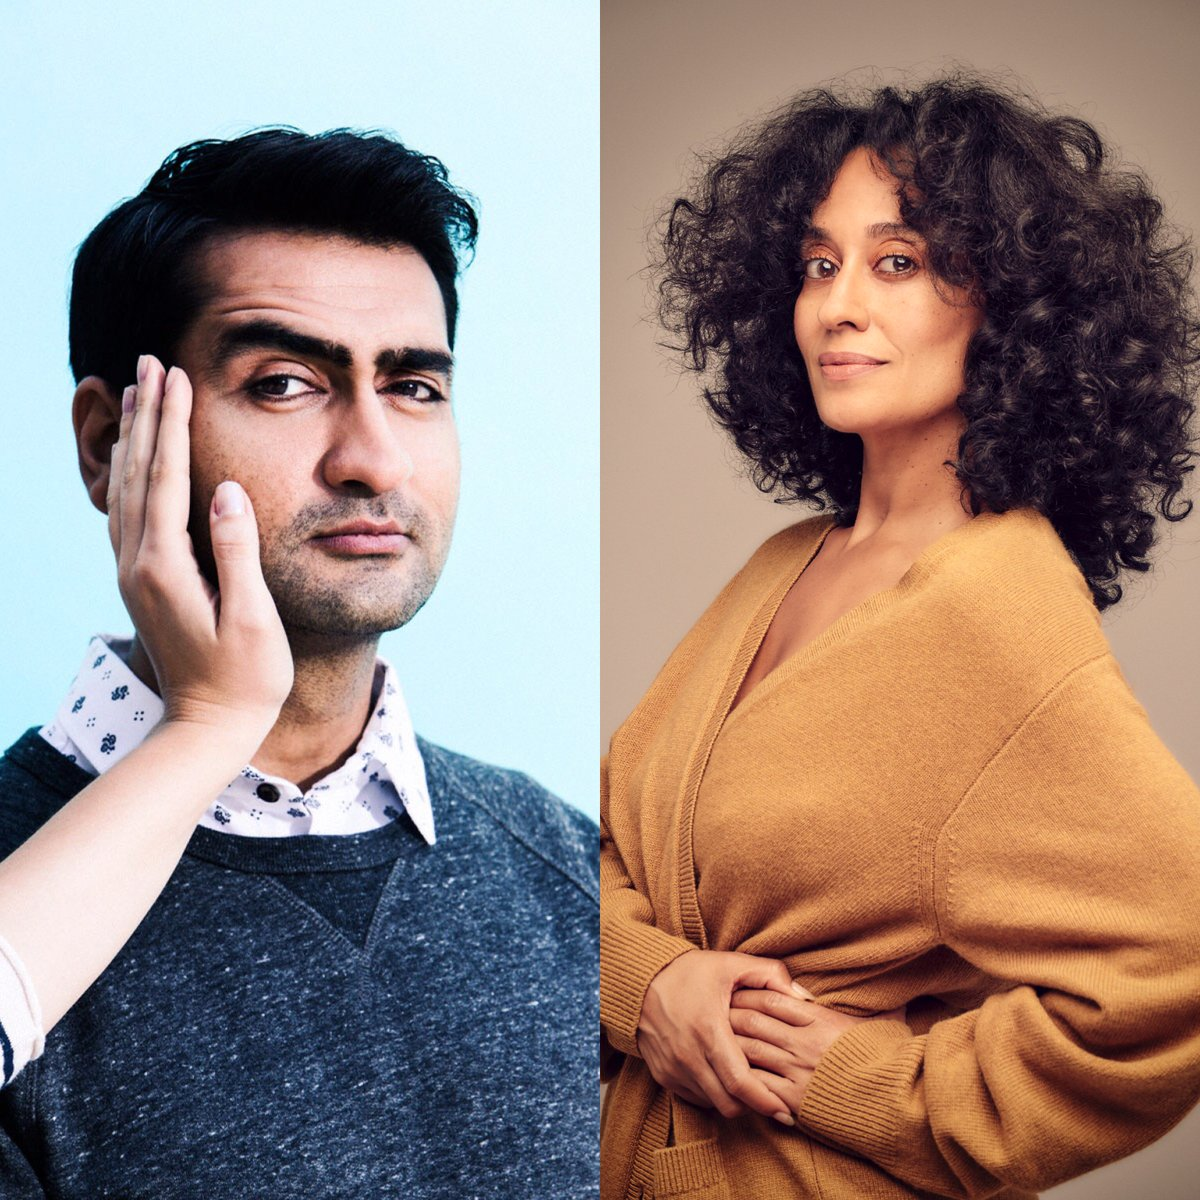 Who's excited for #OscarNoms? Join @KumailN and @TraceeEllisRoss on Tuesday at 5:20 am PST. https://t.co/cZbmfjsA1S